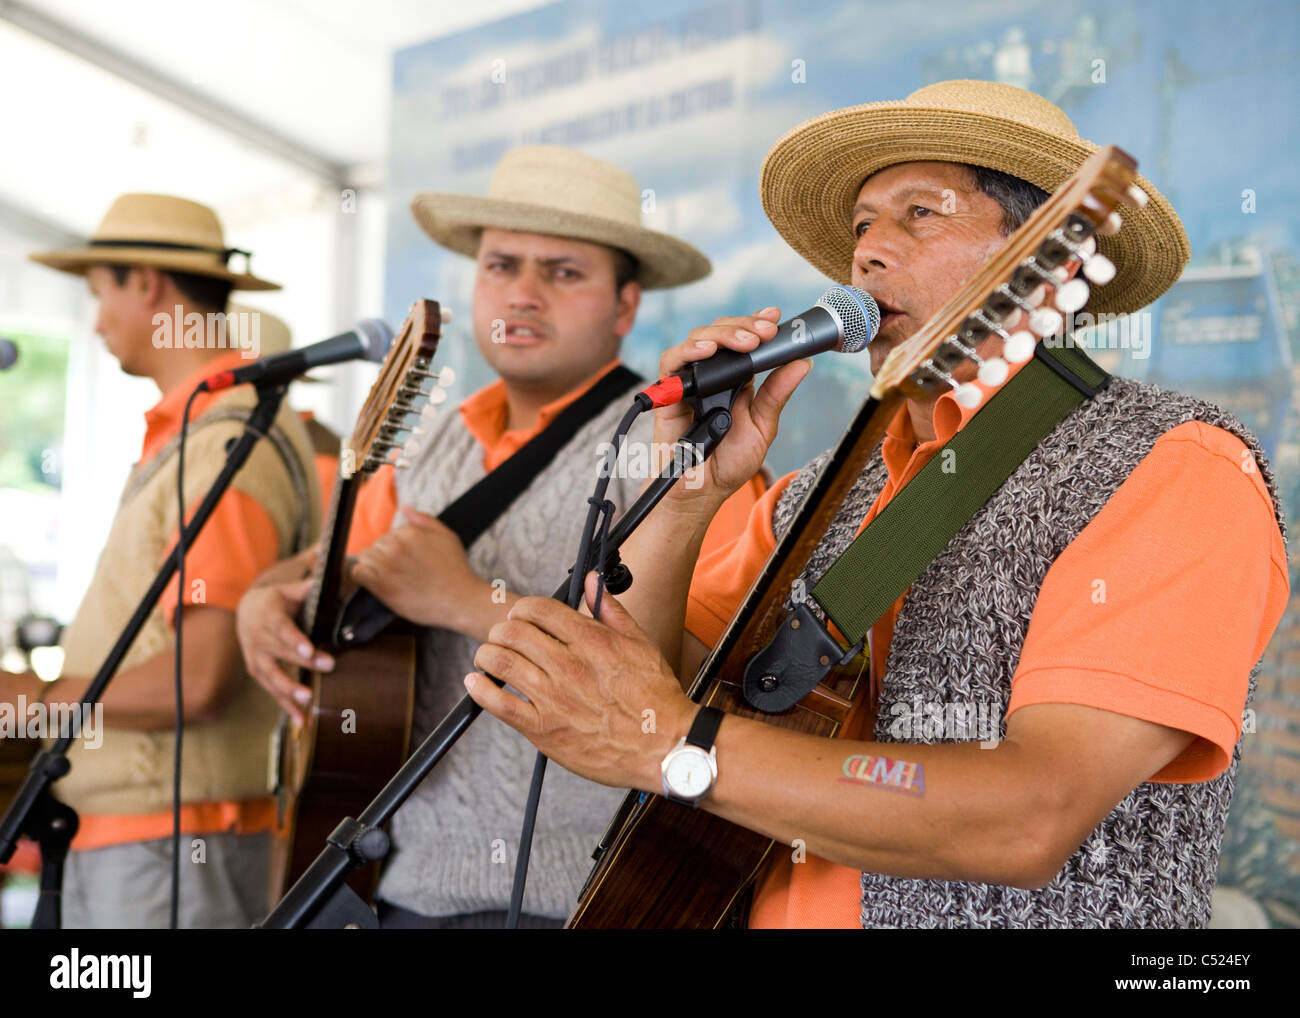 Colombian folk music band on stage - Stock Image